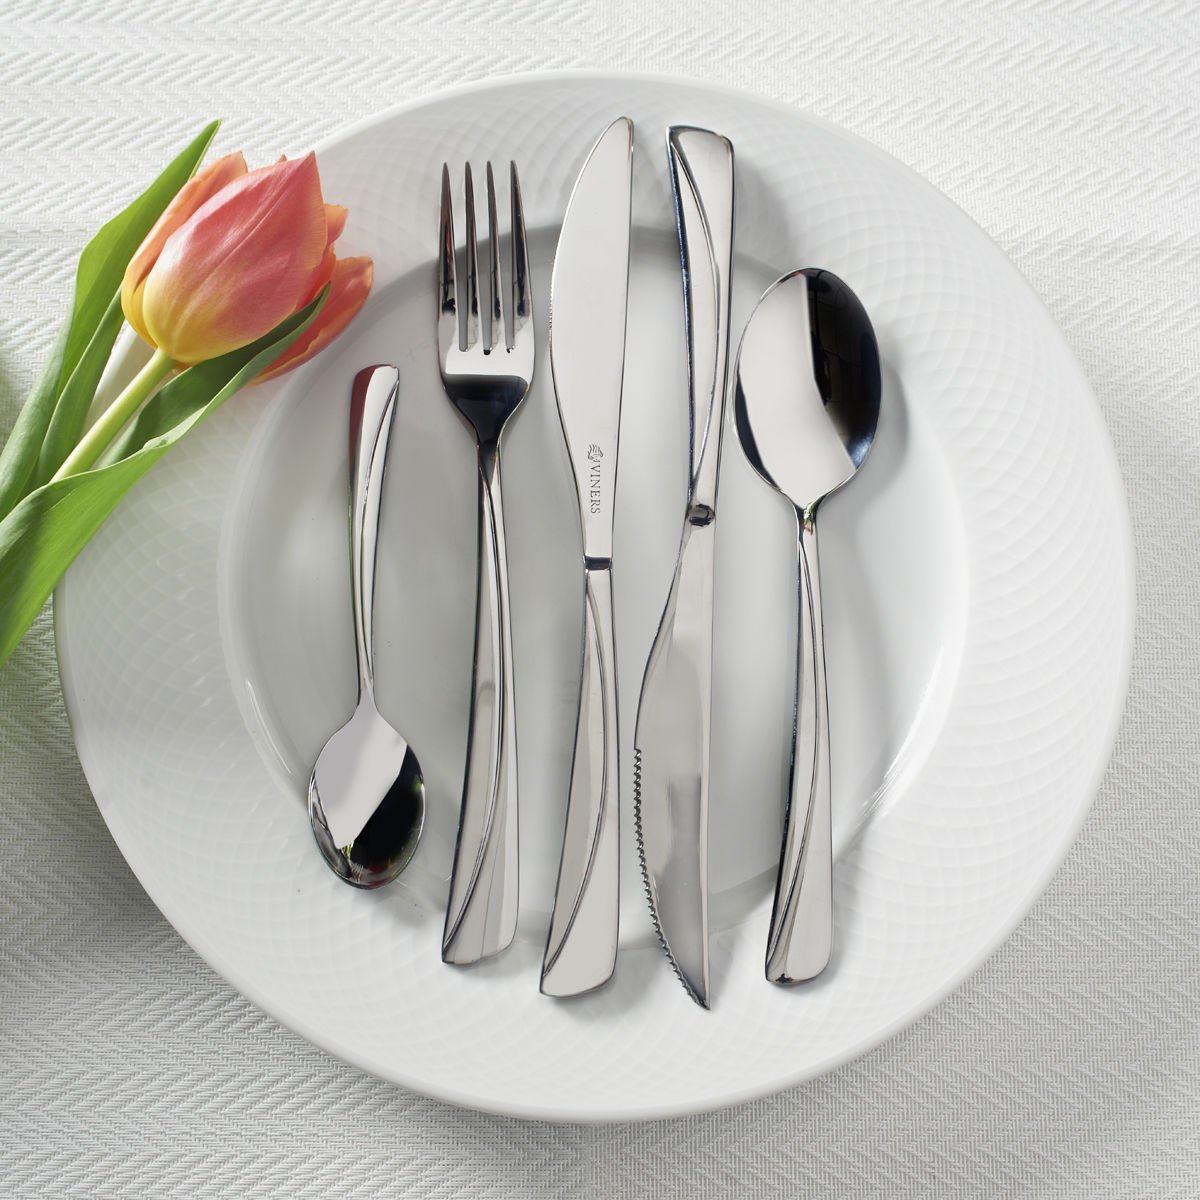 select homeware selecthomeware twitter ebay deal of the month viners angel 58 piece cutlery set only 59 99 great yorkshire value http ebay eu 2uj5psw cutlery ebaysalepic twitter com